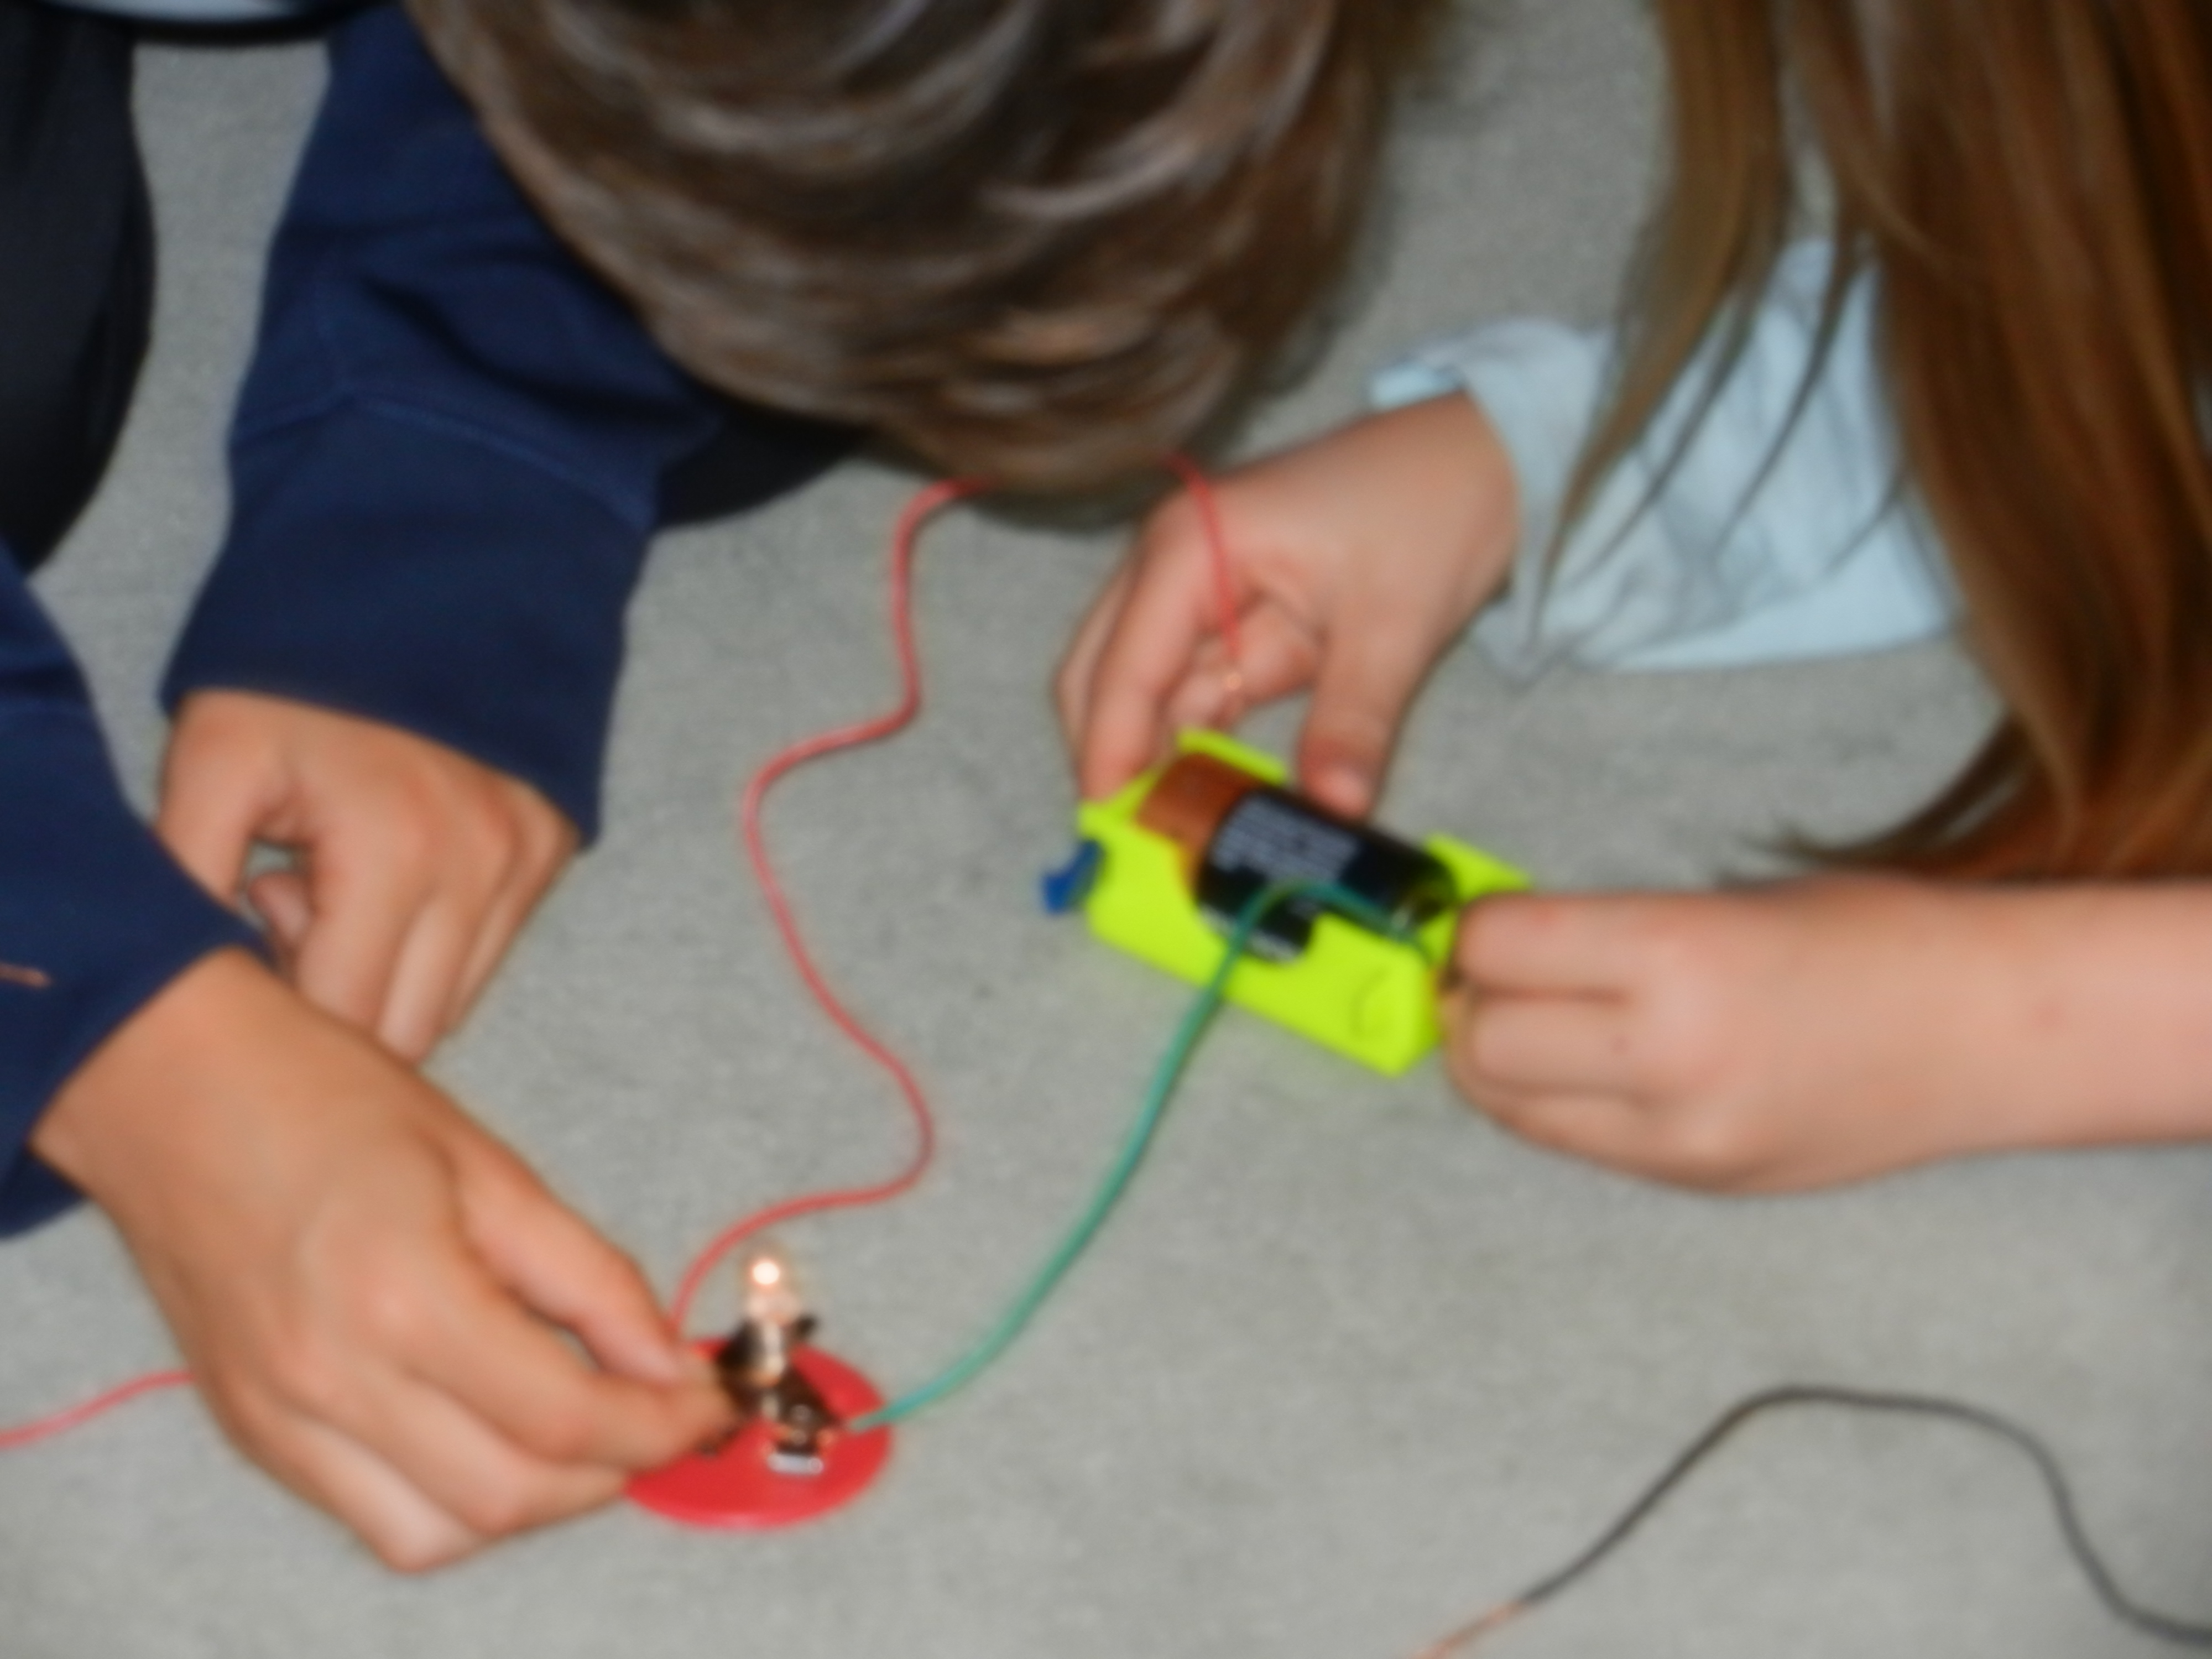 Making Circuits Work: A Learning Journey | Making Thinking Happen